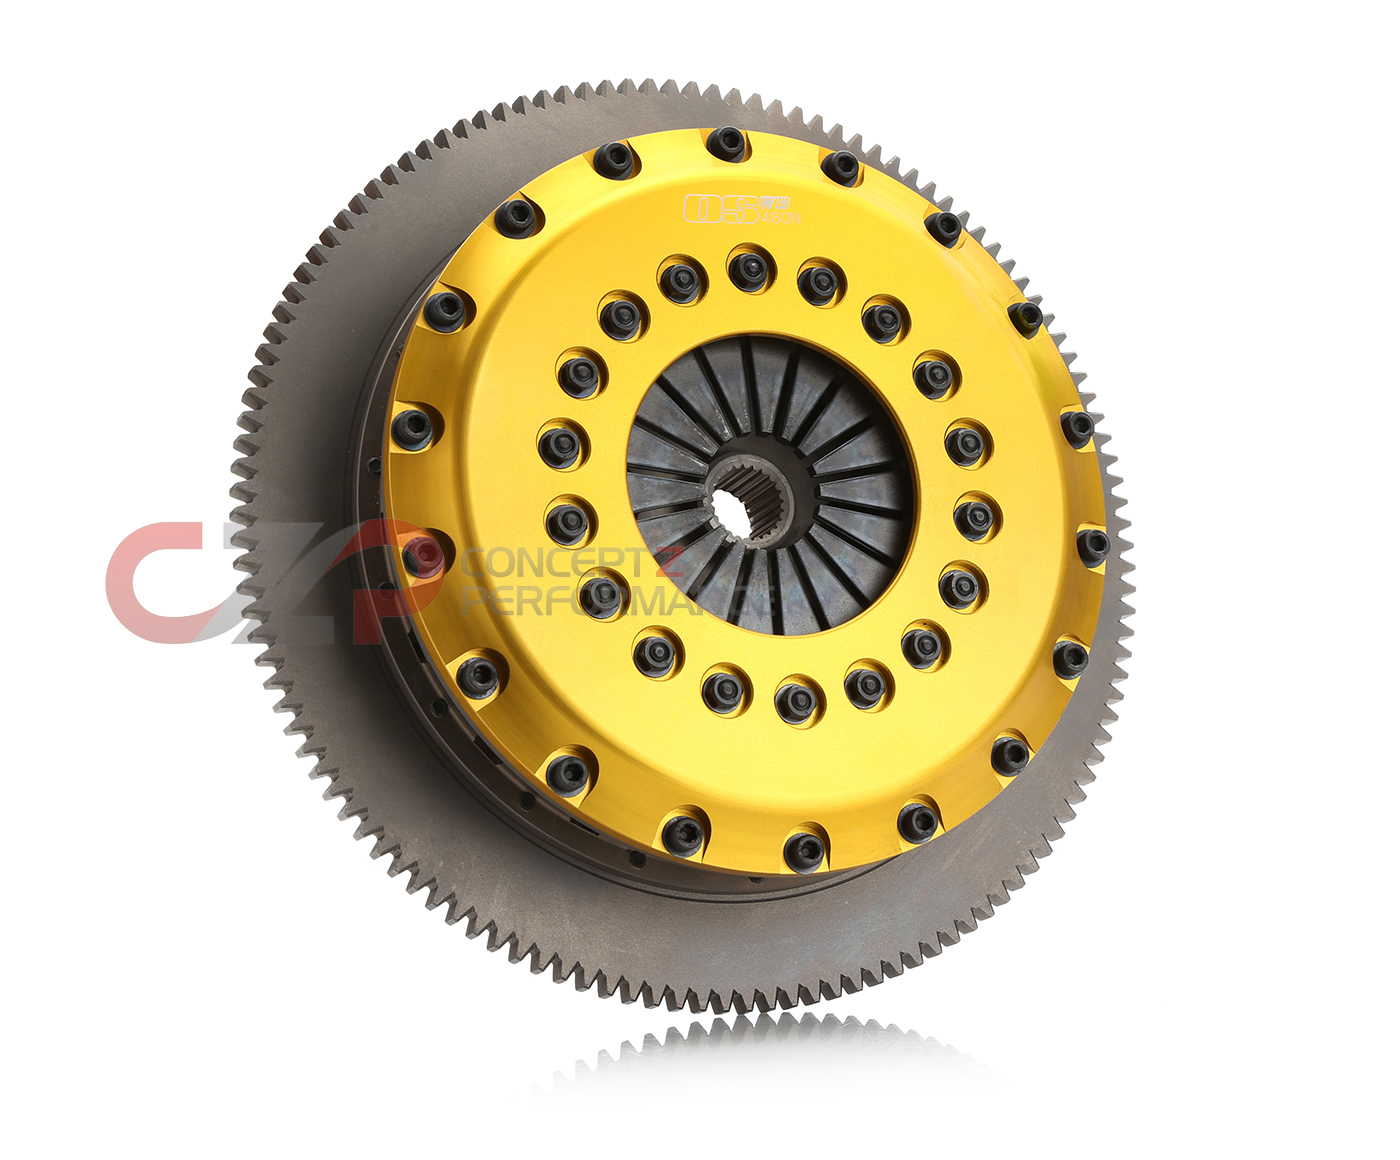 OS Giken 300ZX Triple Plate Clutch Kit - R3C Billet Aluminum Cover